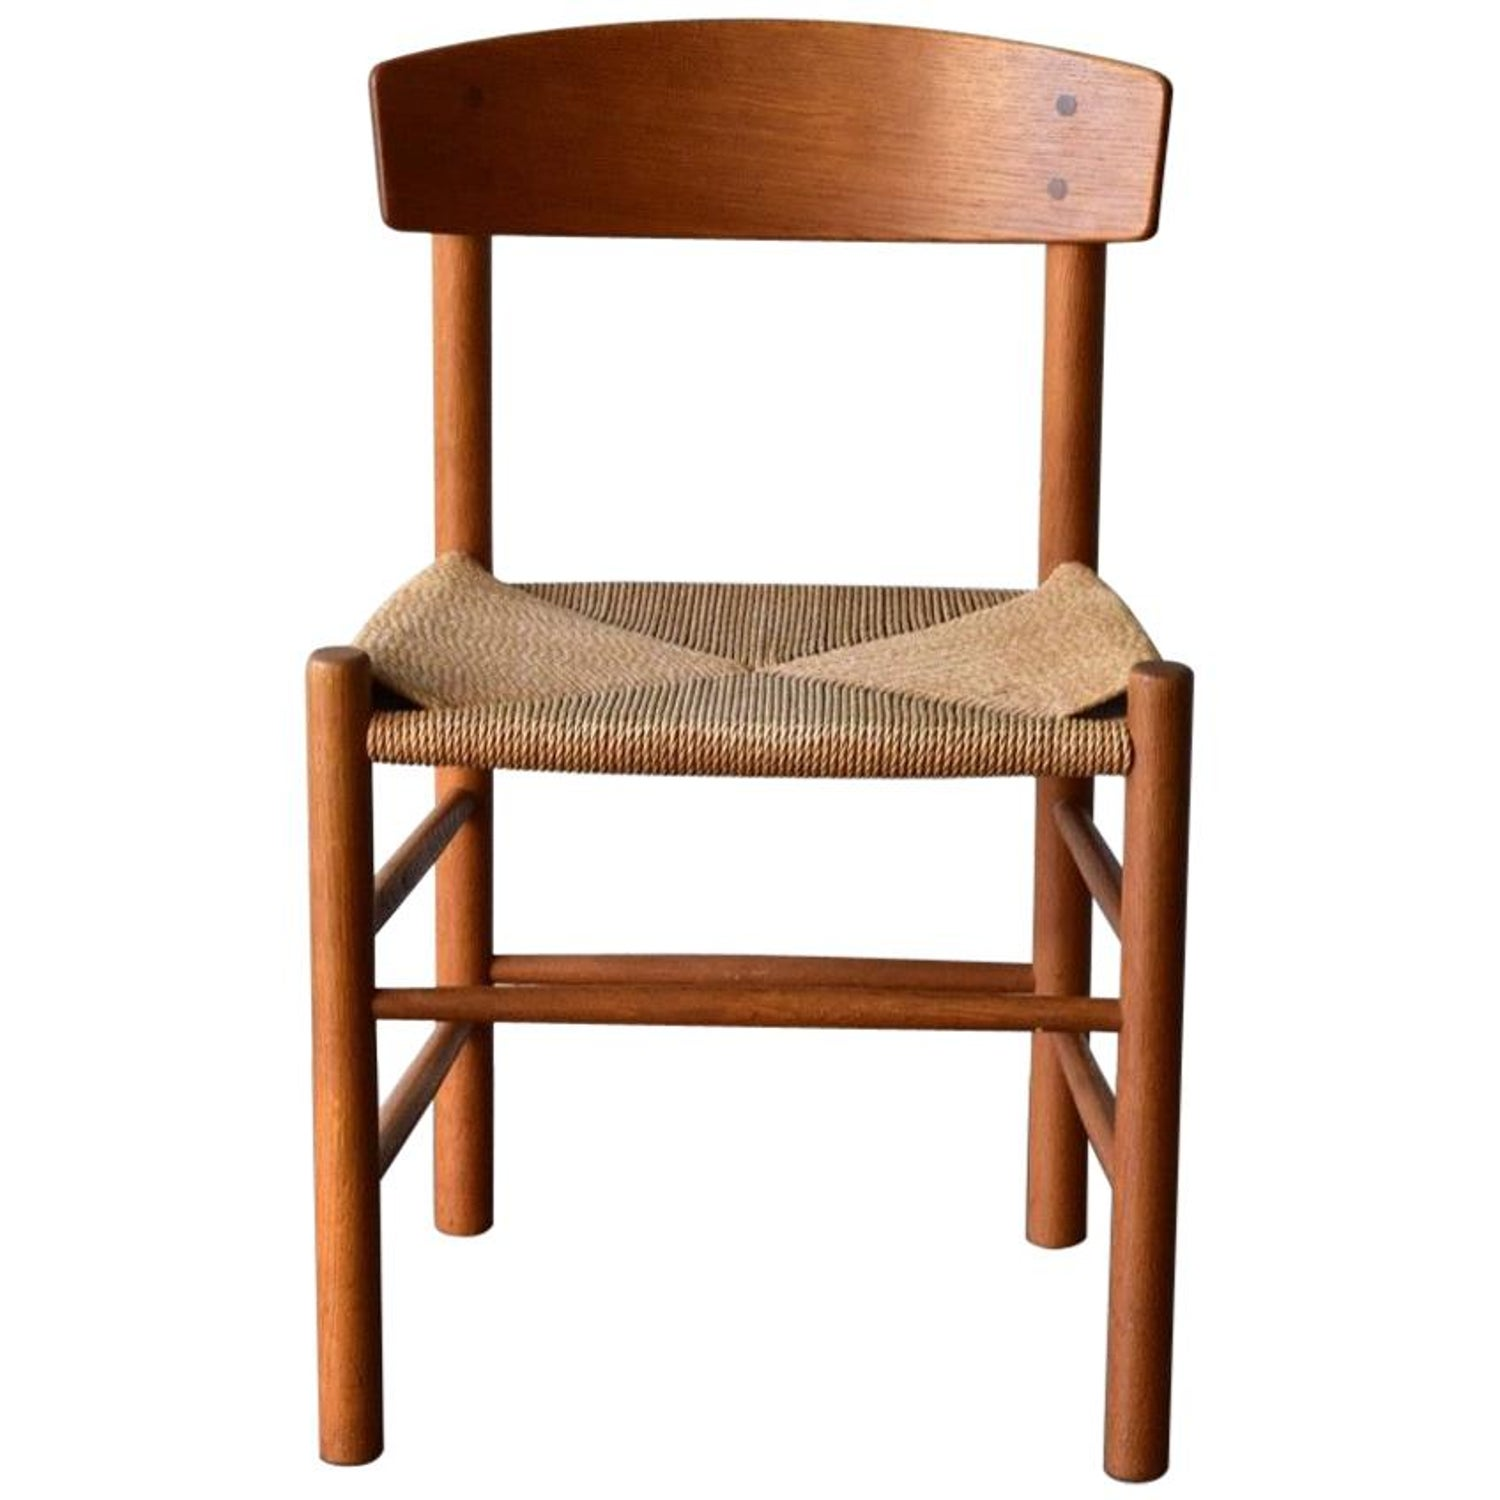 Vintage Wooden Chairs >> Vintage Oak Borge Mogensen Chairs Produced By J39 Fdb Mobler Denmark